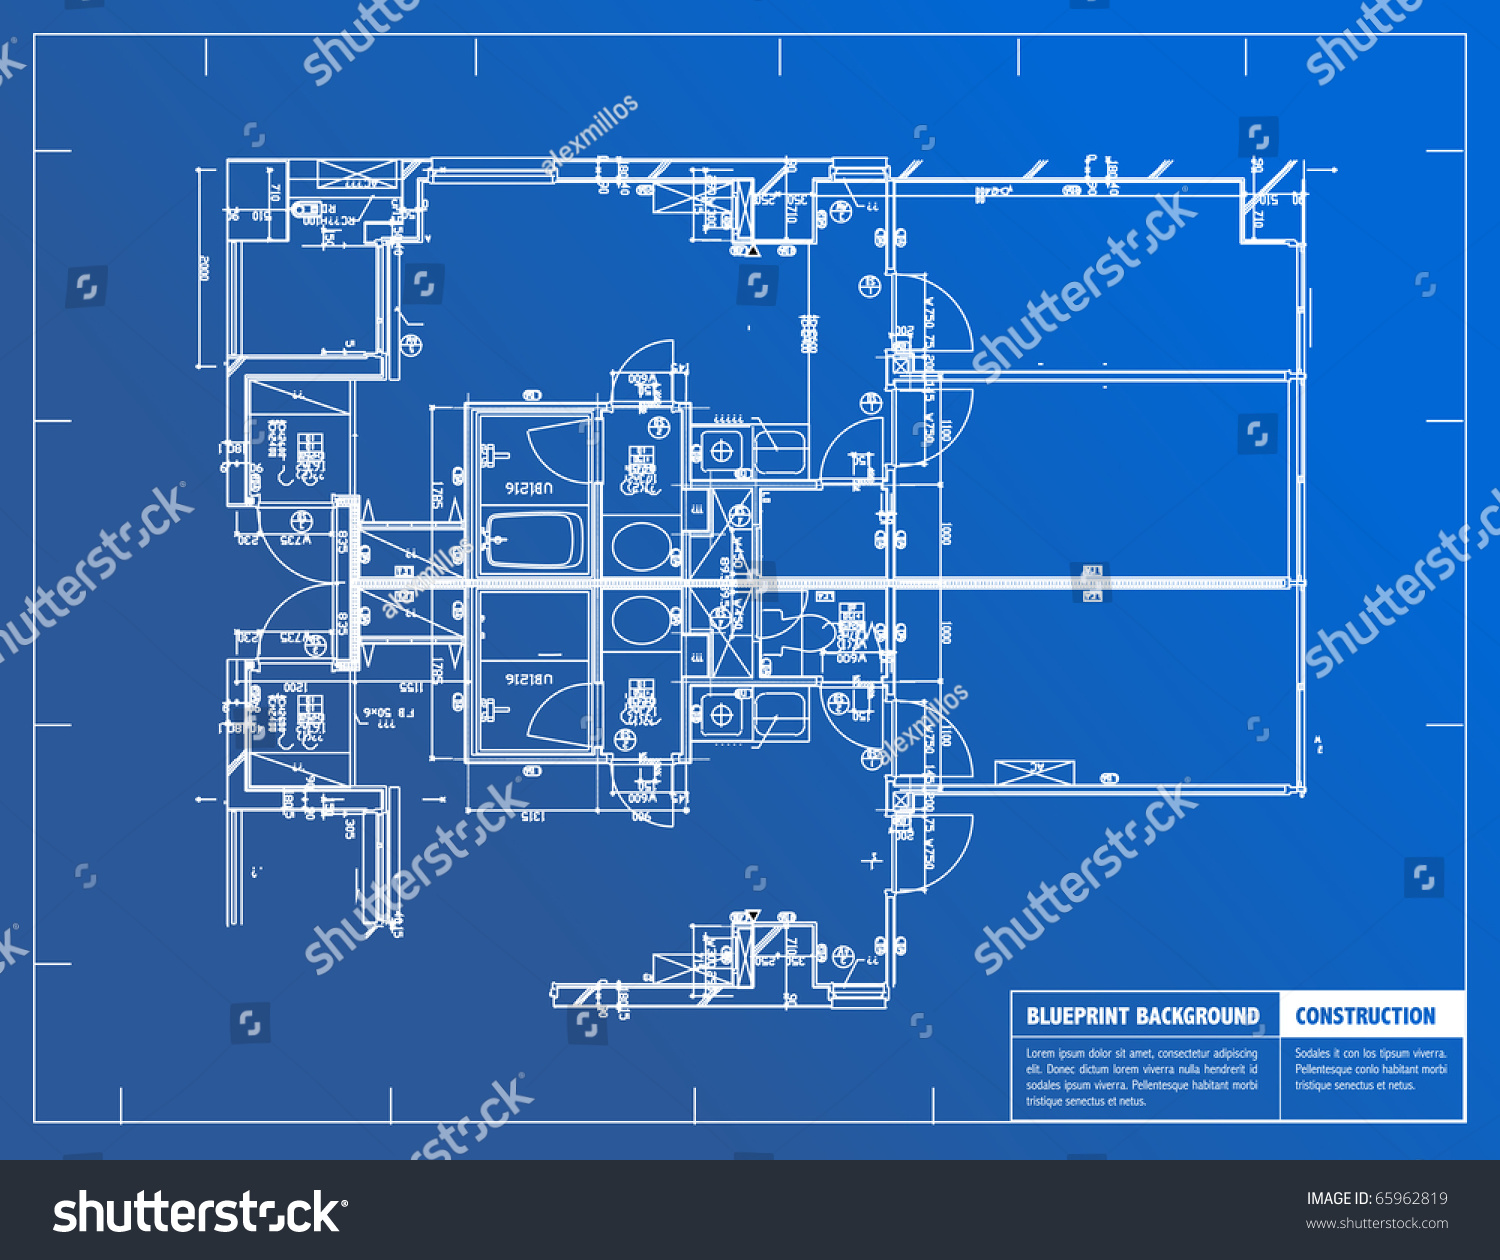 Sample architectural blueprints over blue background stock for Blueprints for my home